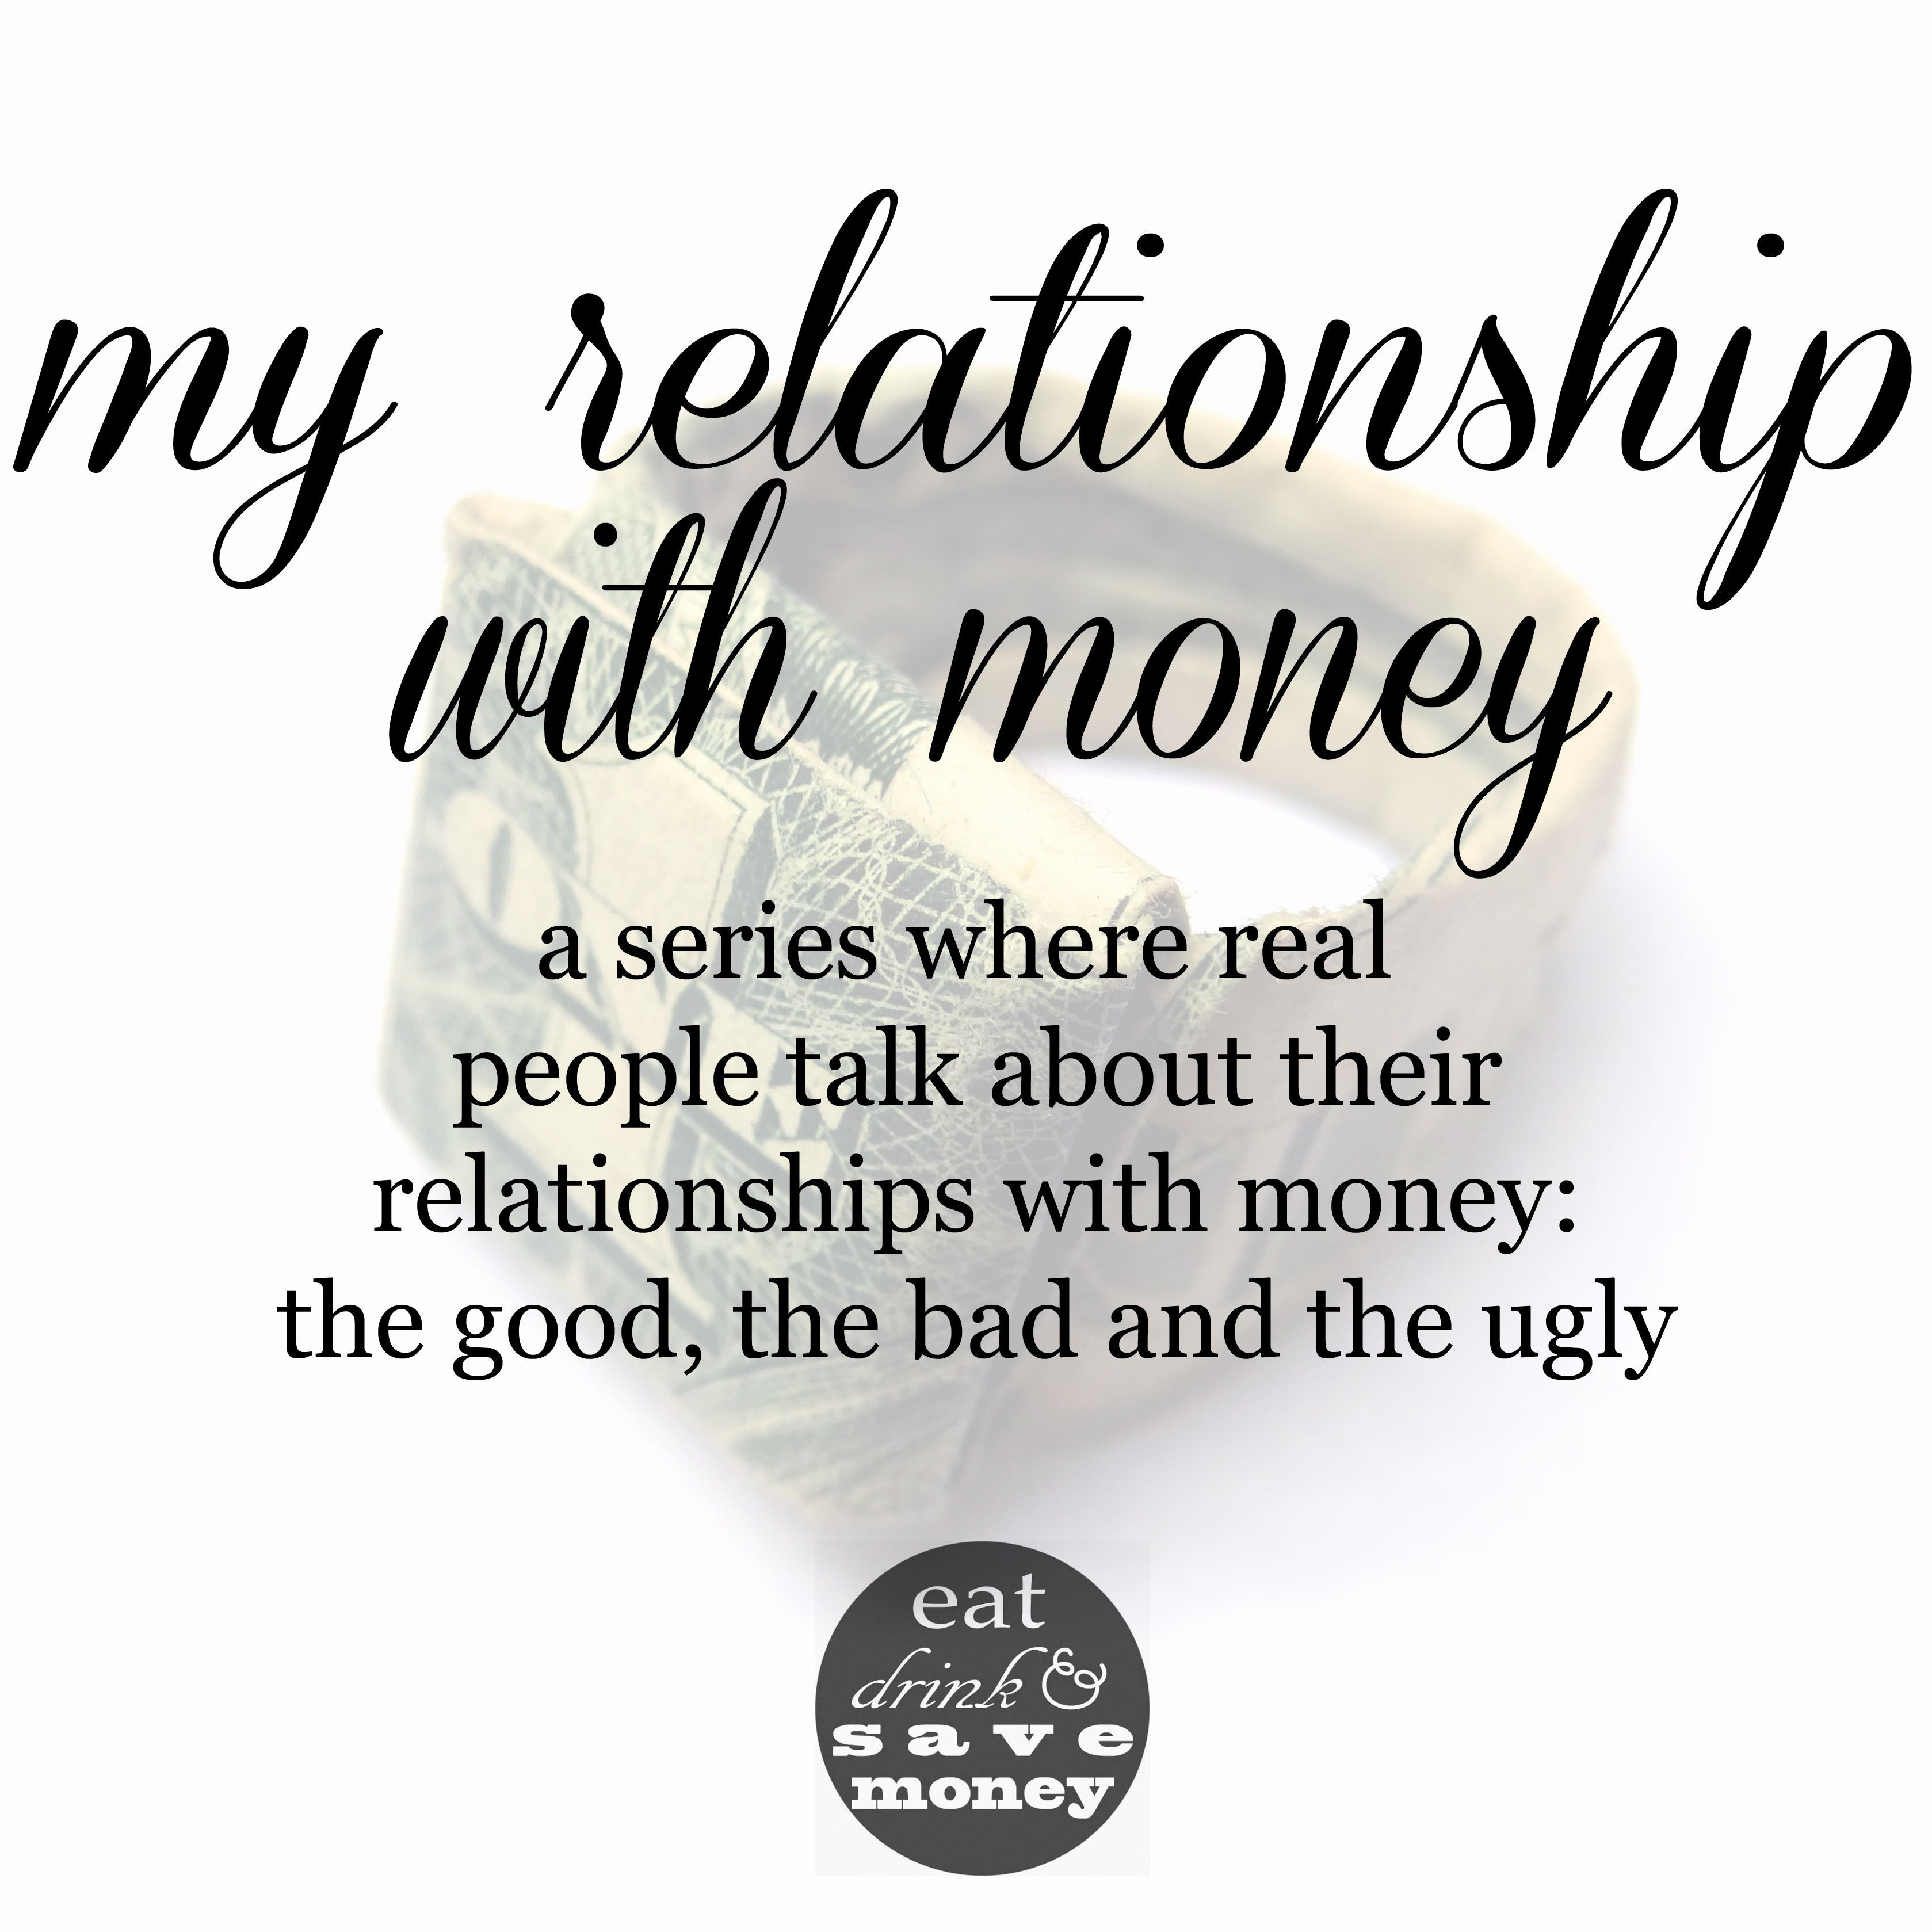 Relationship with money_edited-1